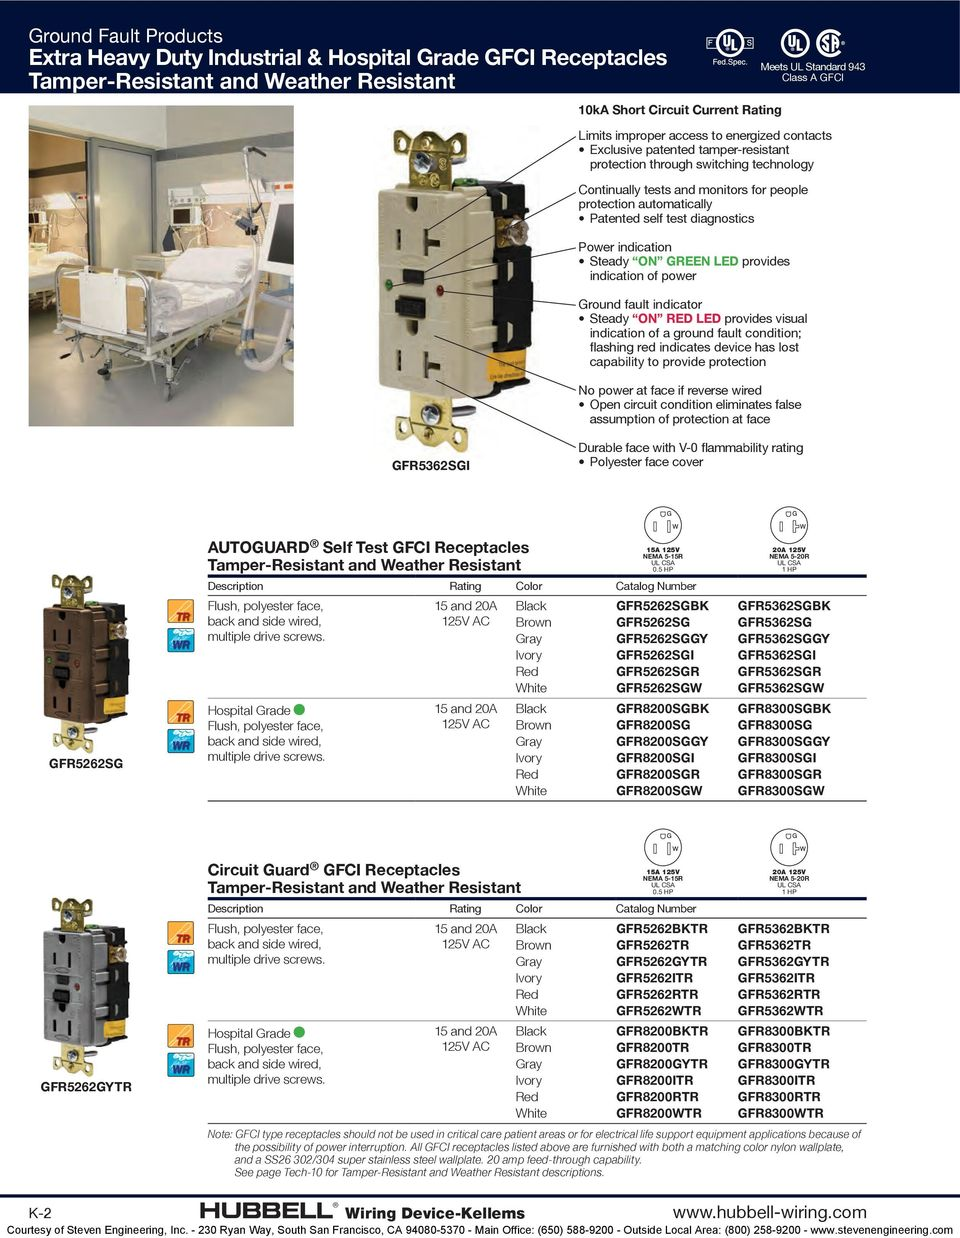 Ground Fault Products - PDF